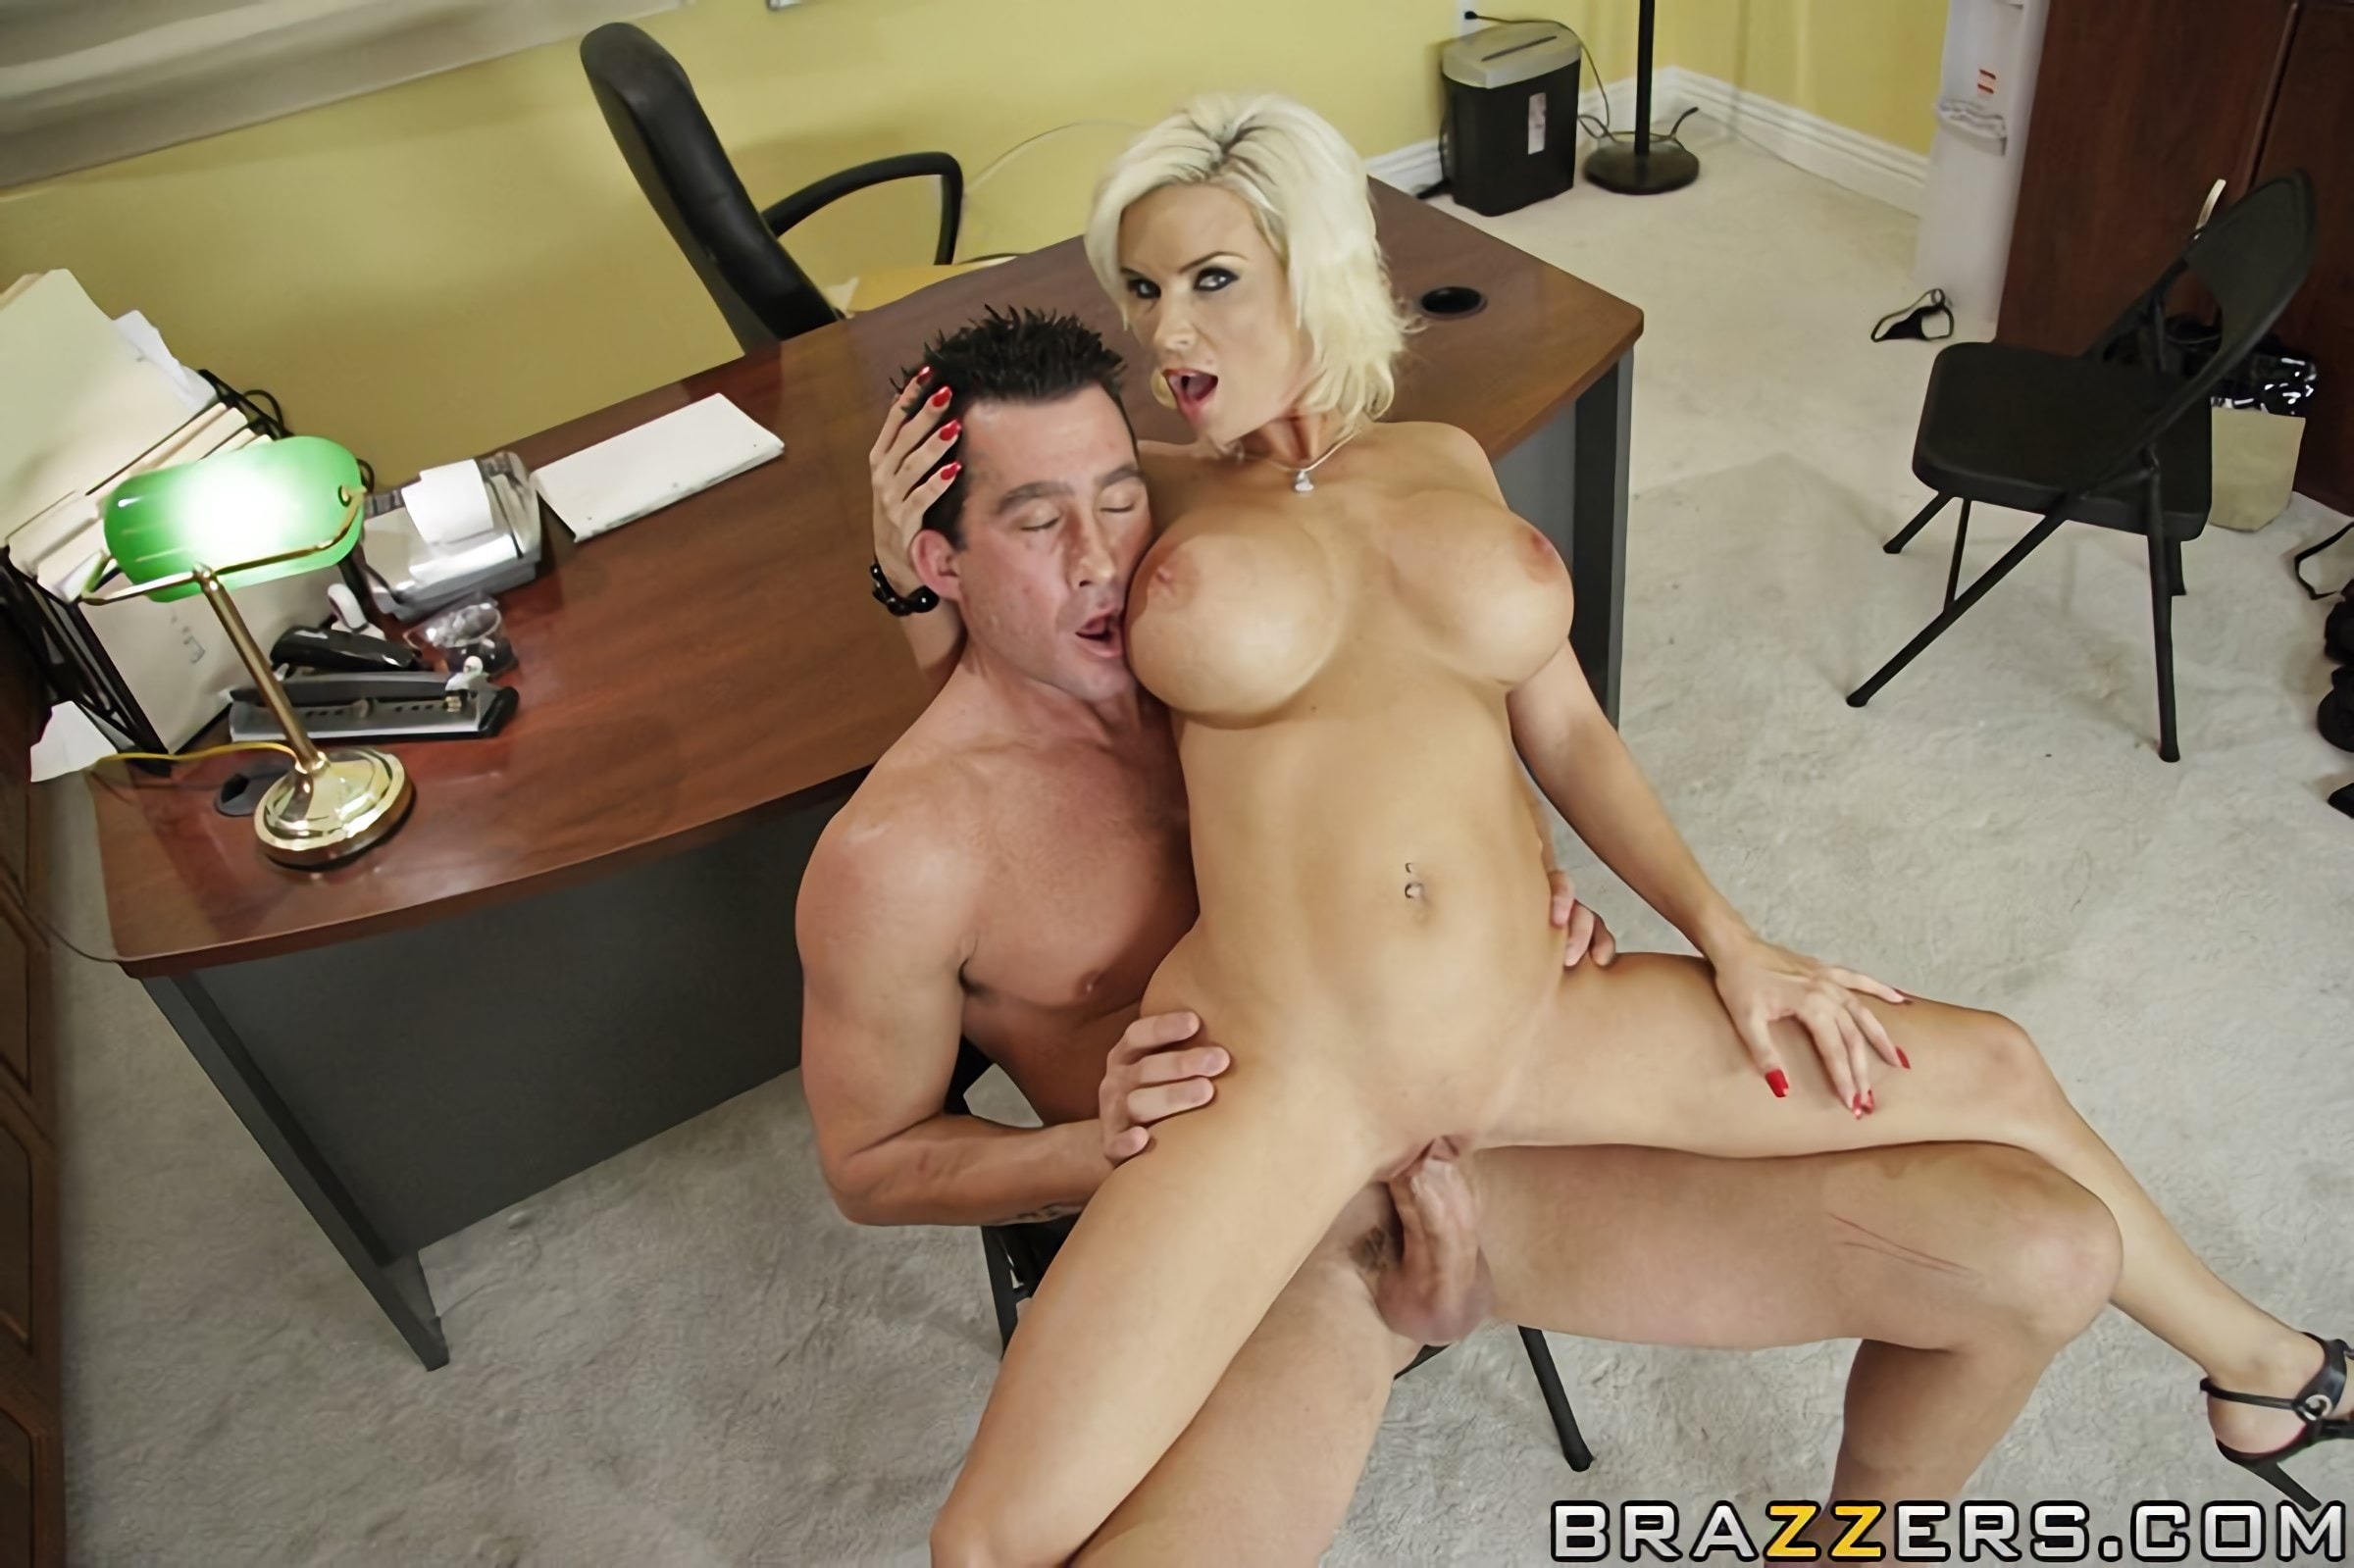 Brazzerscom Diamond Foxxx amp Billy Glide  Big Cock